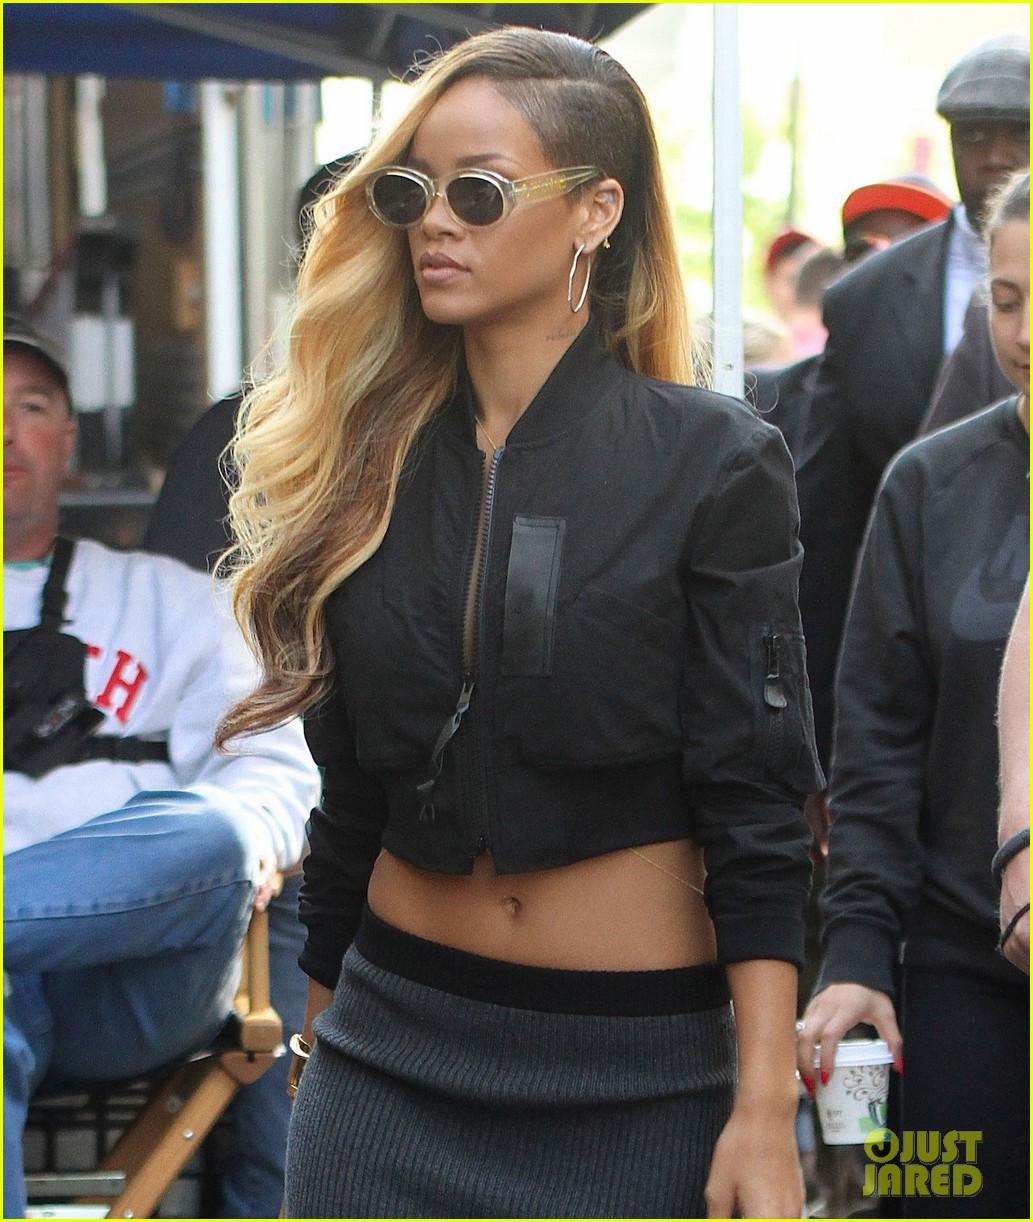 rihanna bares midriff for commercial shoot in nyc 052871124